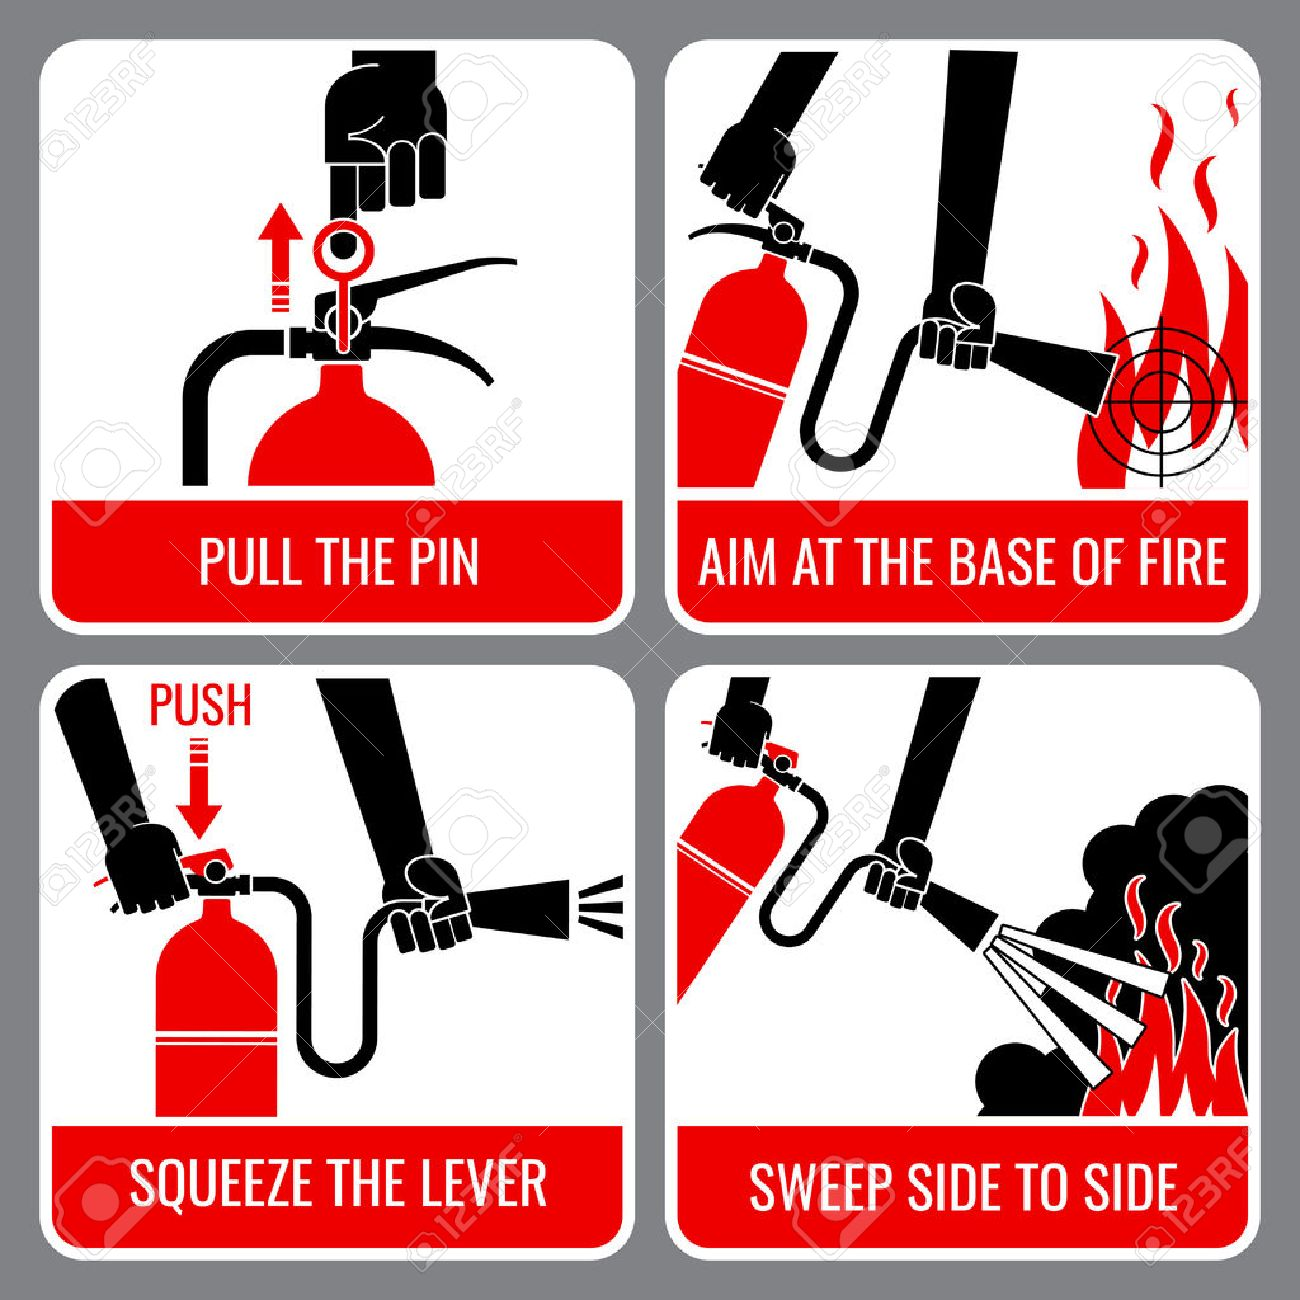 Fire extinguisher vector instruction. Warning and danger, flame and caution, informational banner illustration - 51706928